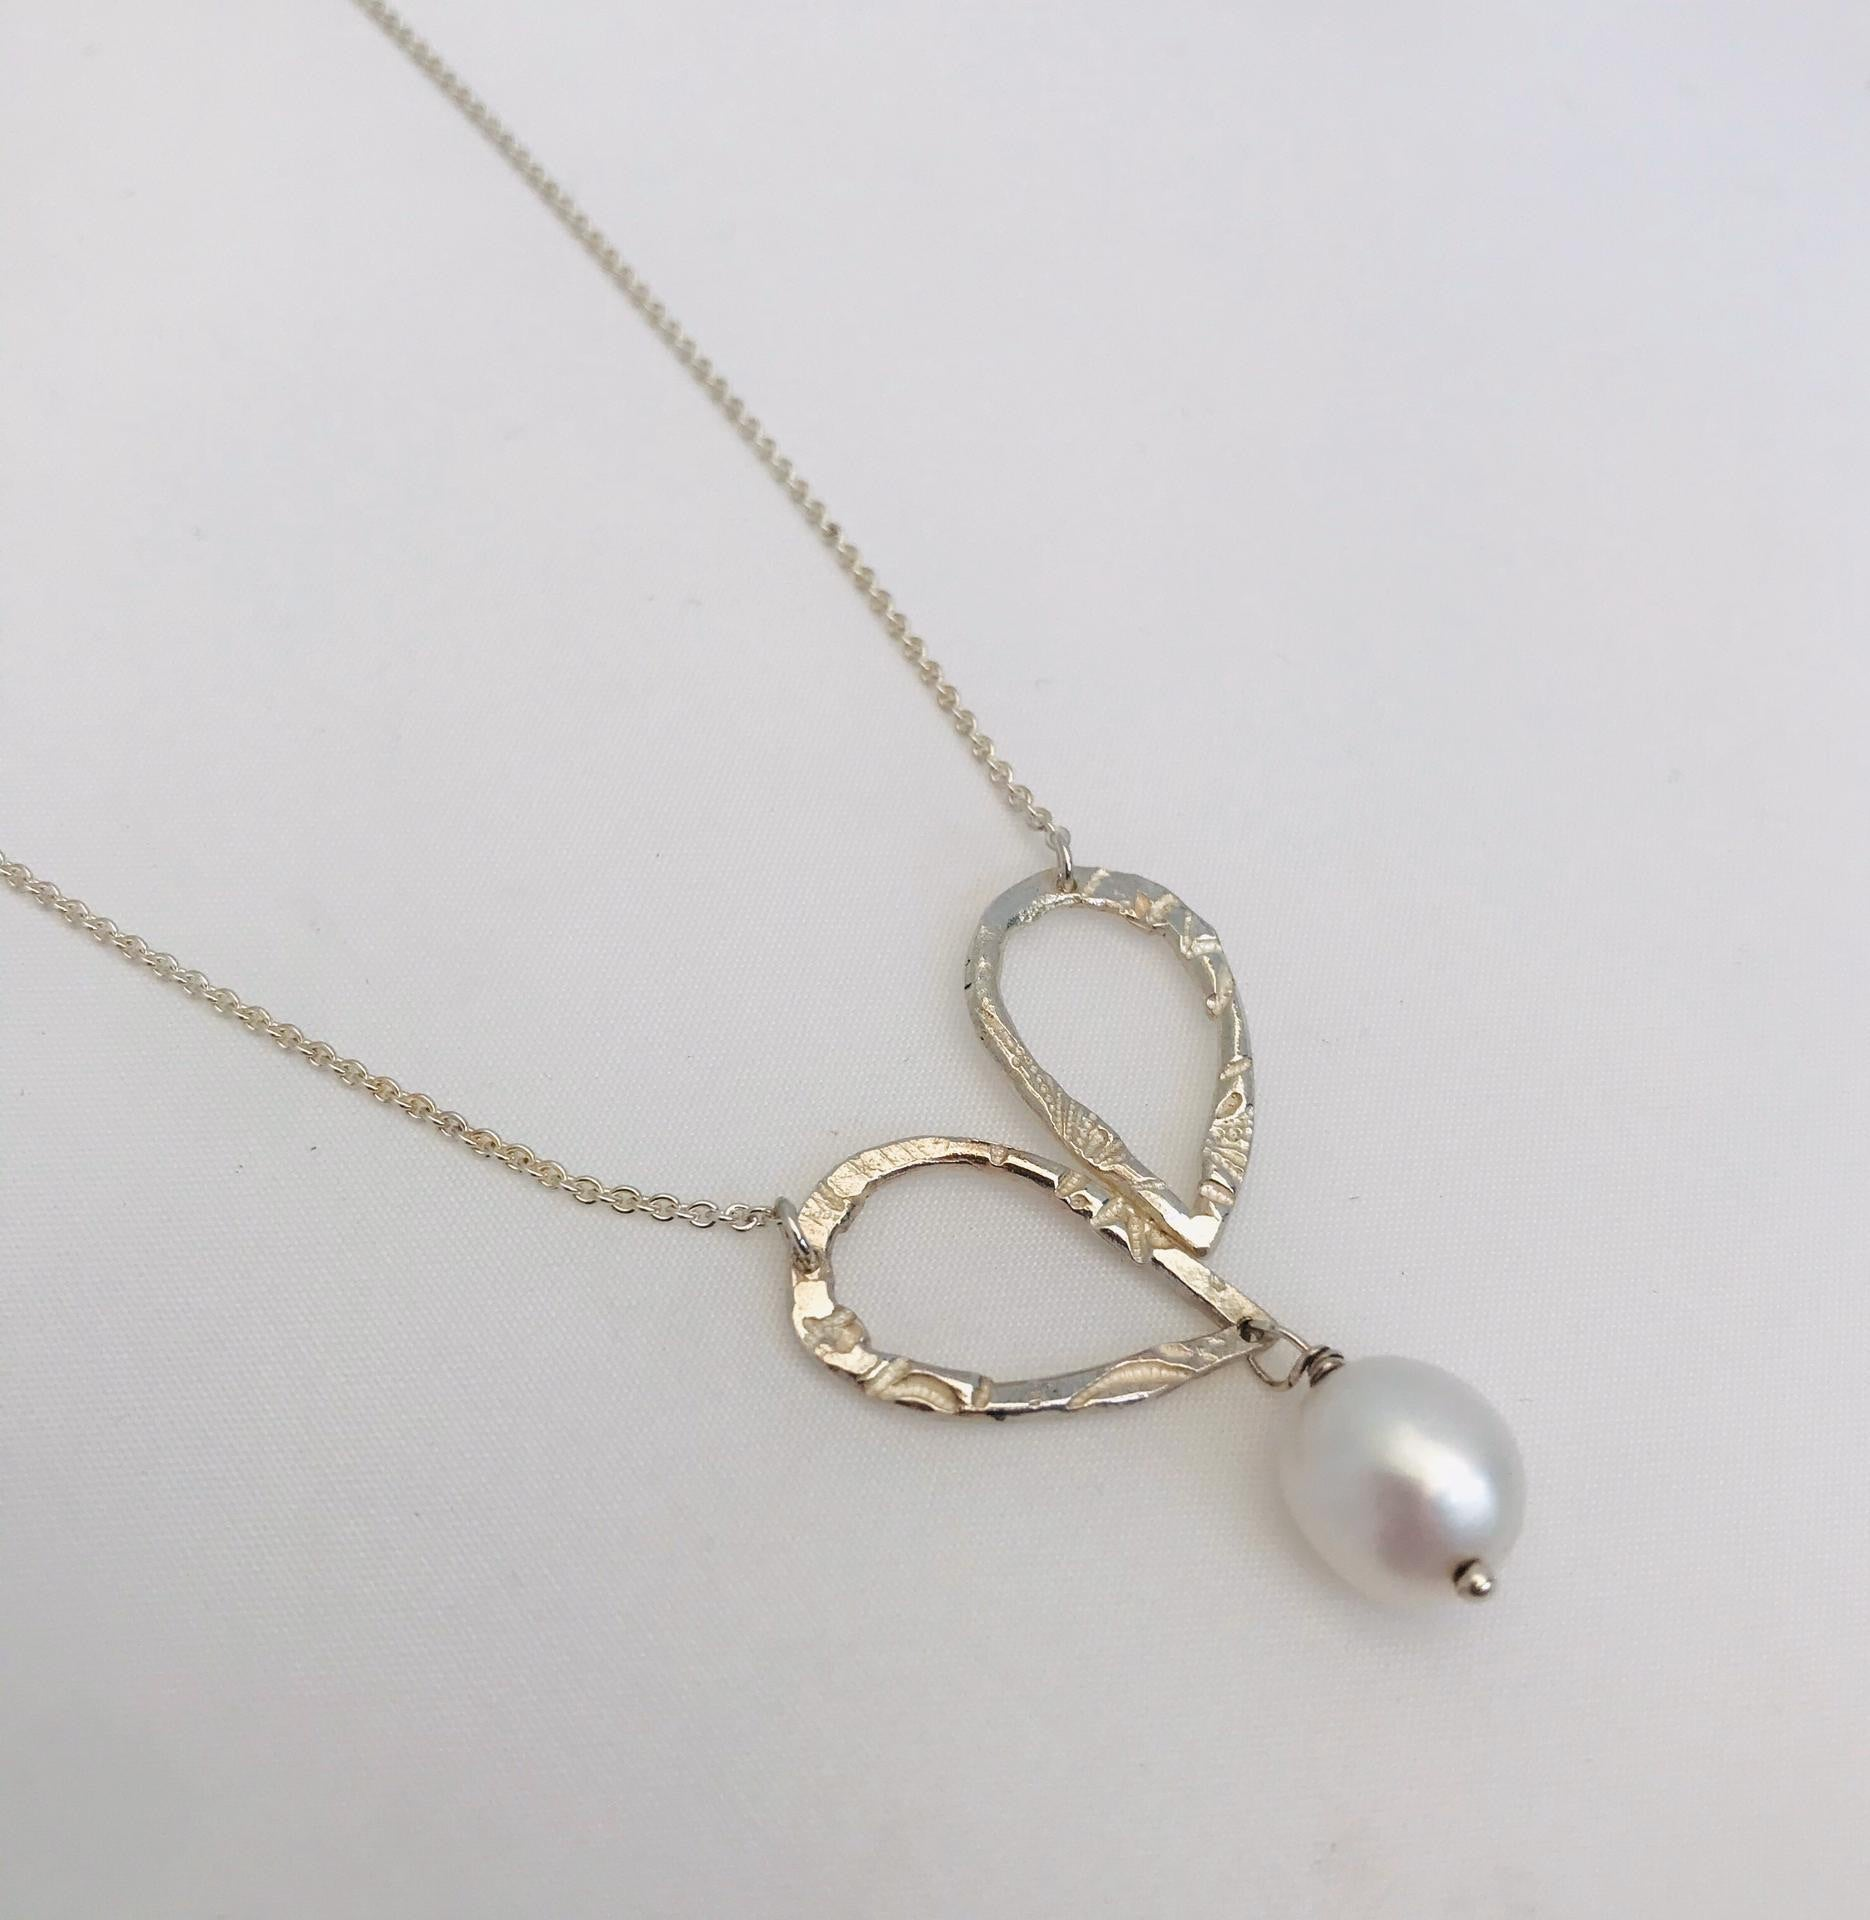 Lies Wambacq - silver freshwater pearl necklace